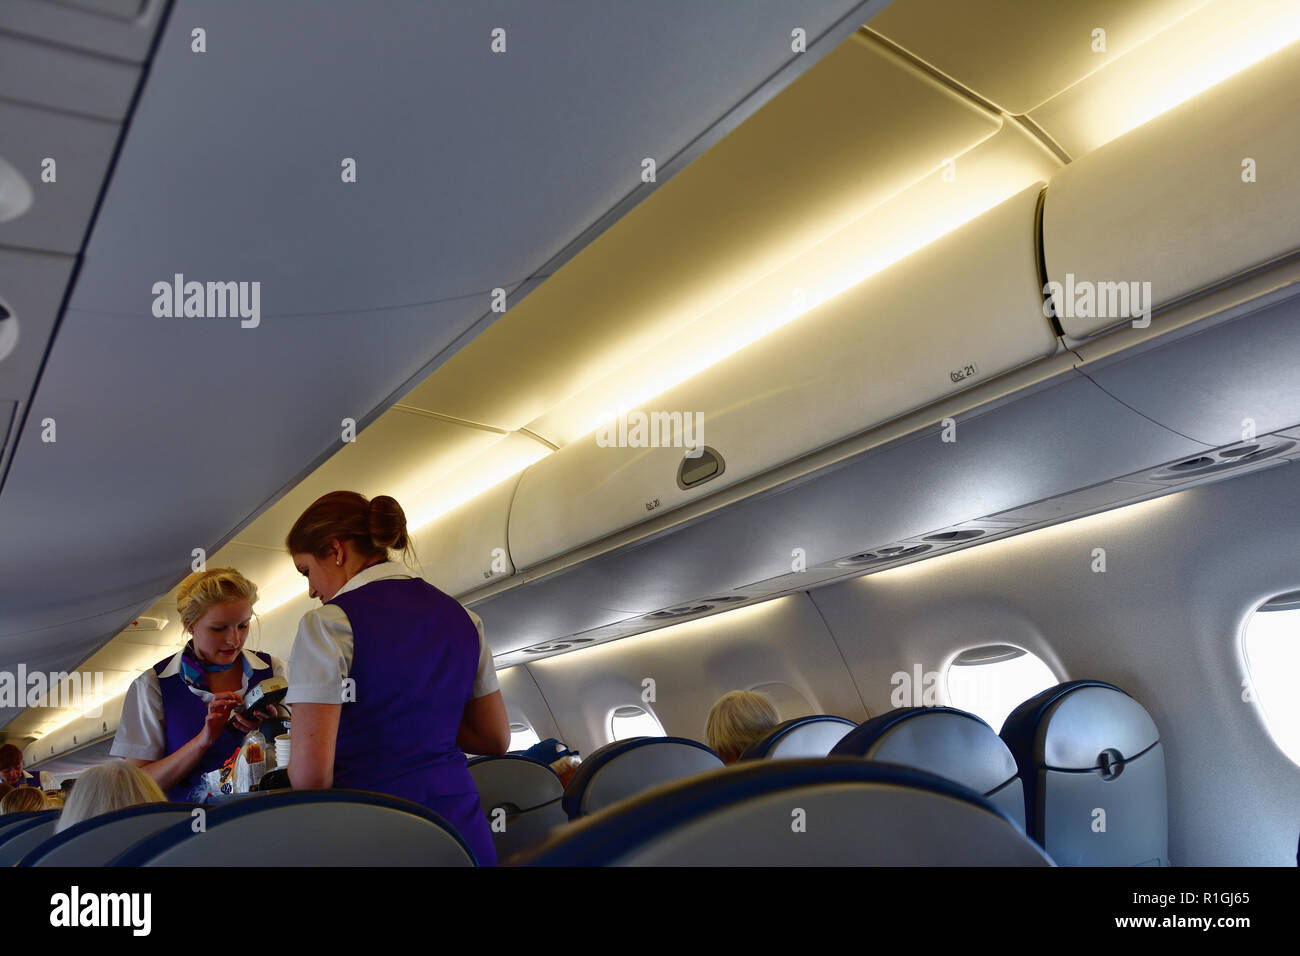 Monarch Airlines. Cabin aboard a Monarch aircraft. Malaga, Andalucia, Spain, Europe Stock Photo